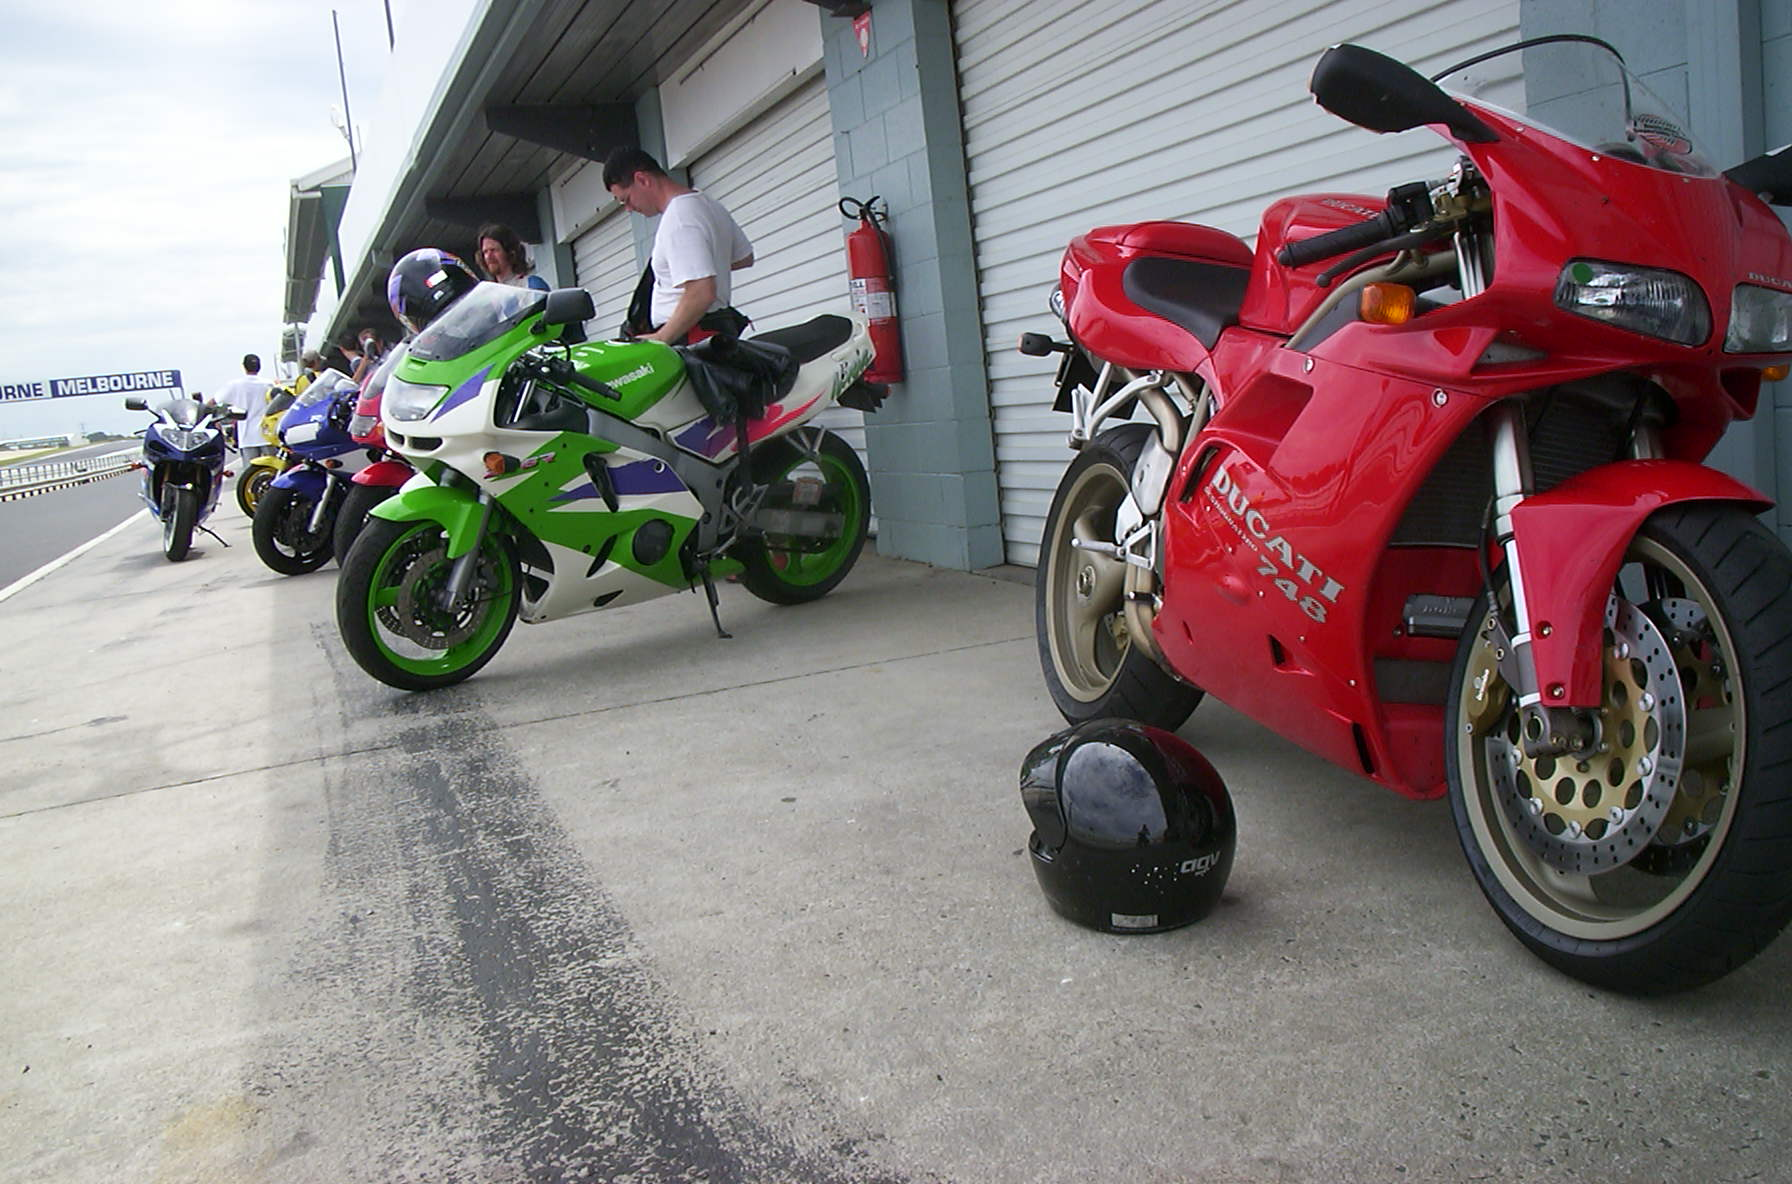 05/11/01. Phillip Island race track, ride day. Pits.